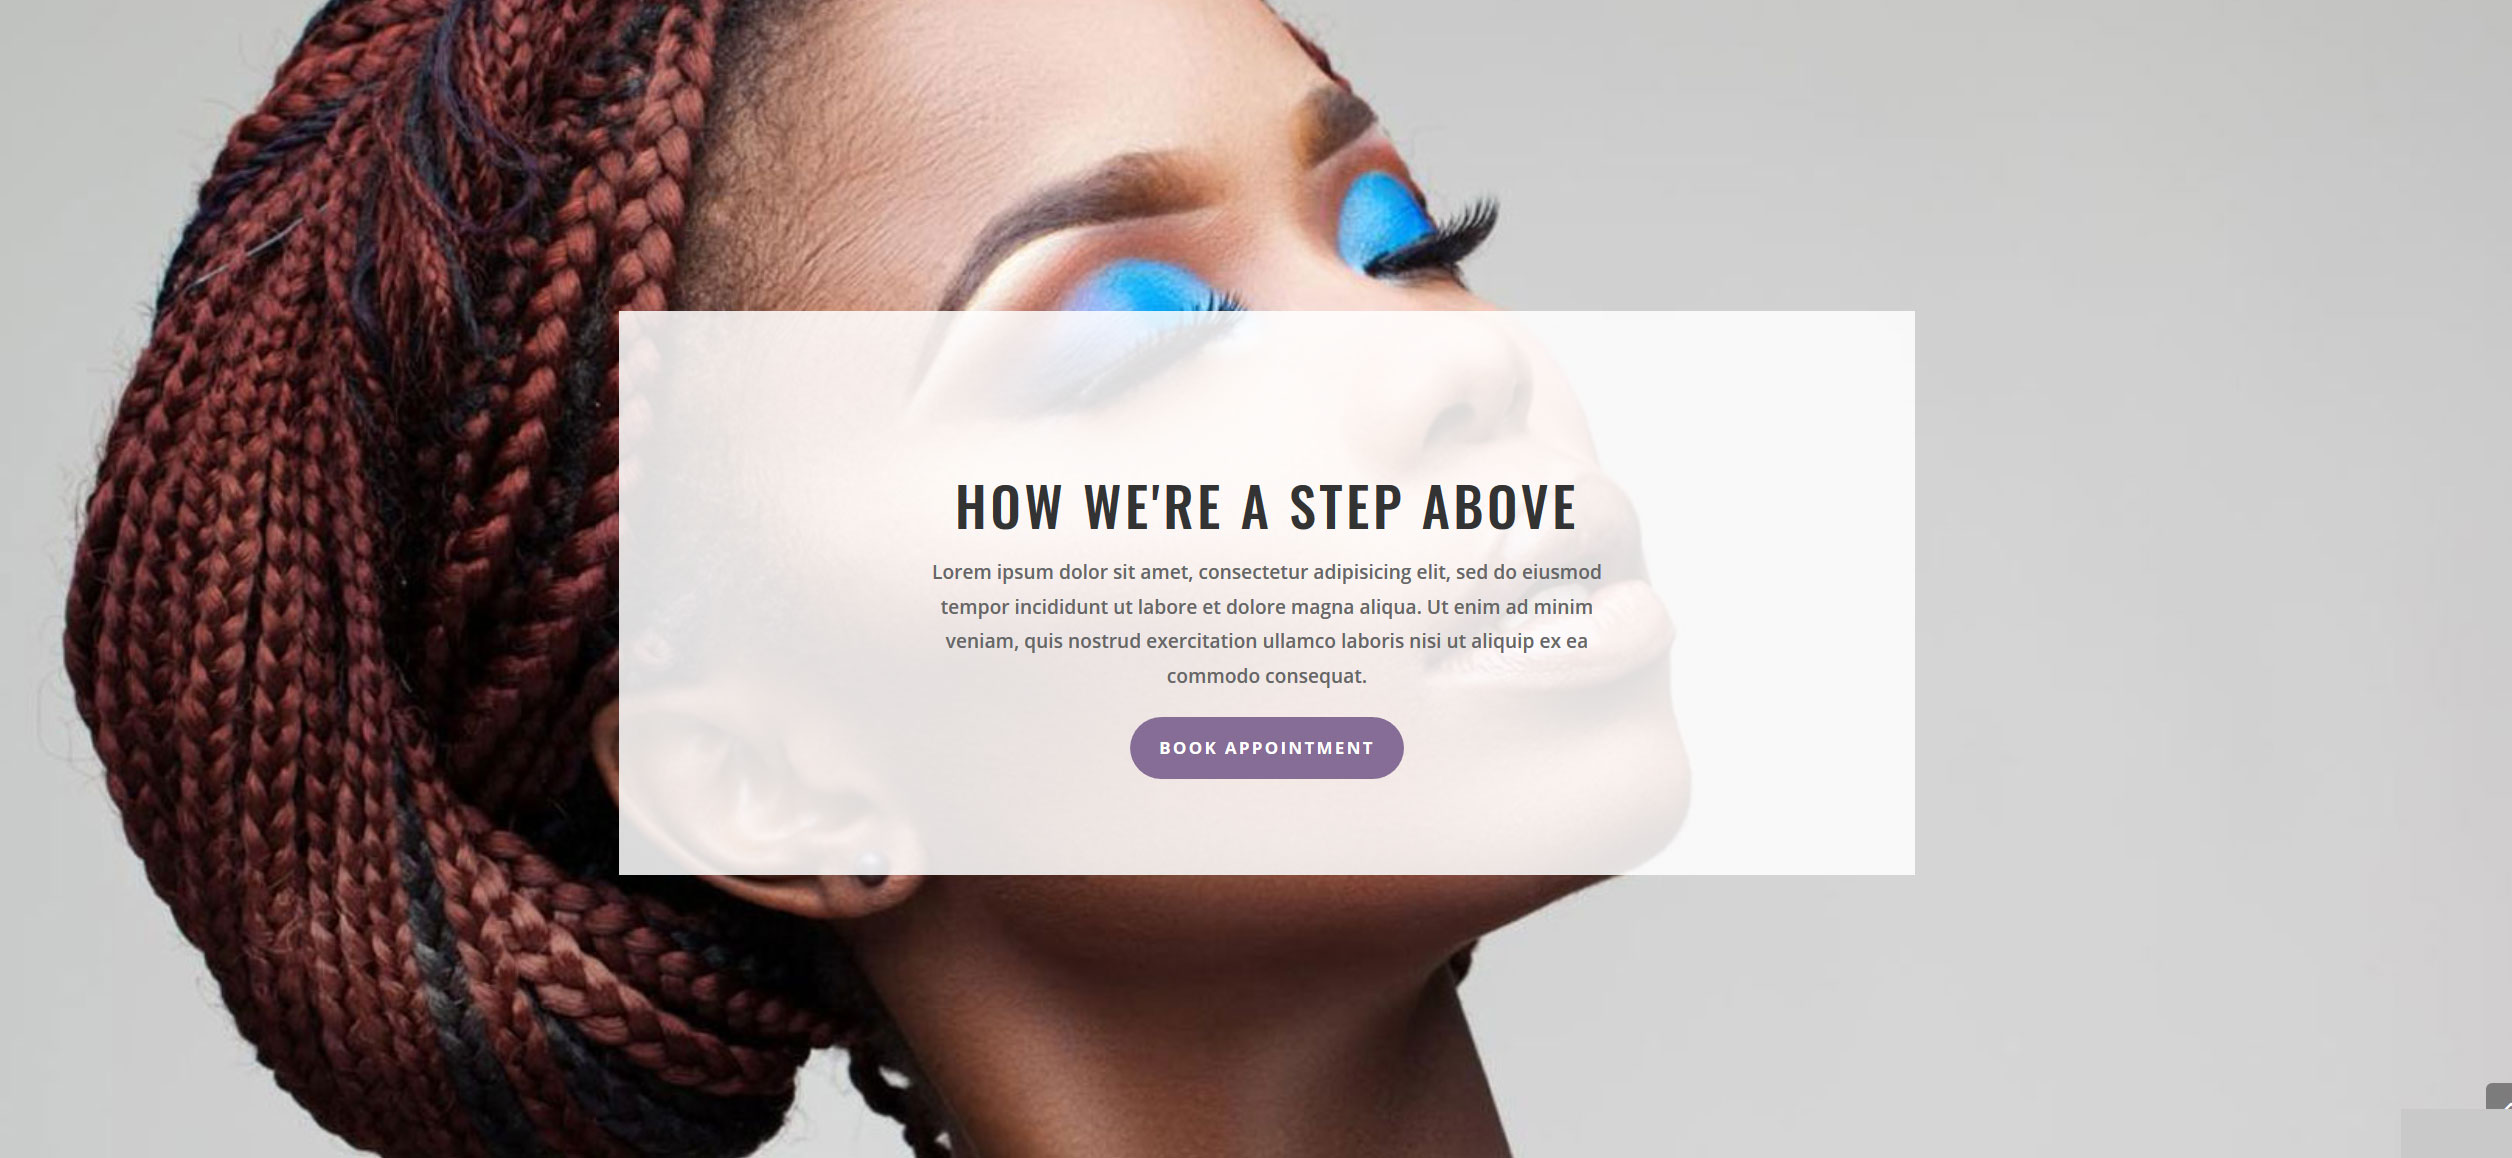 Website for Hair Braiding v1 - How We're Different